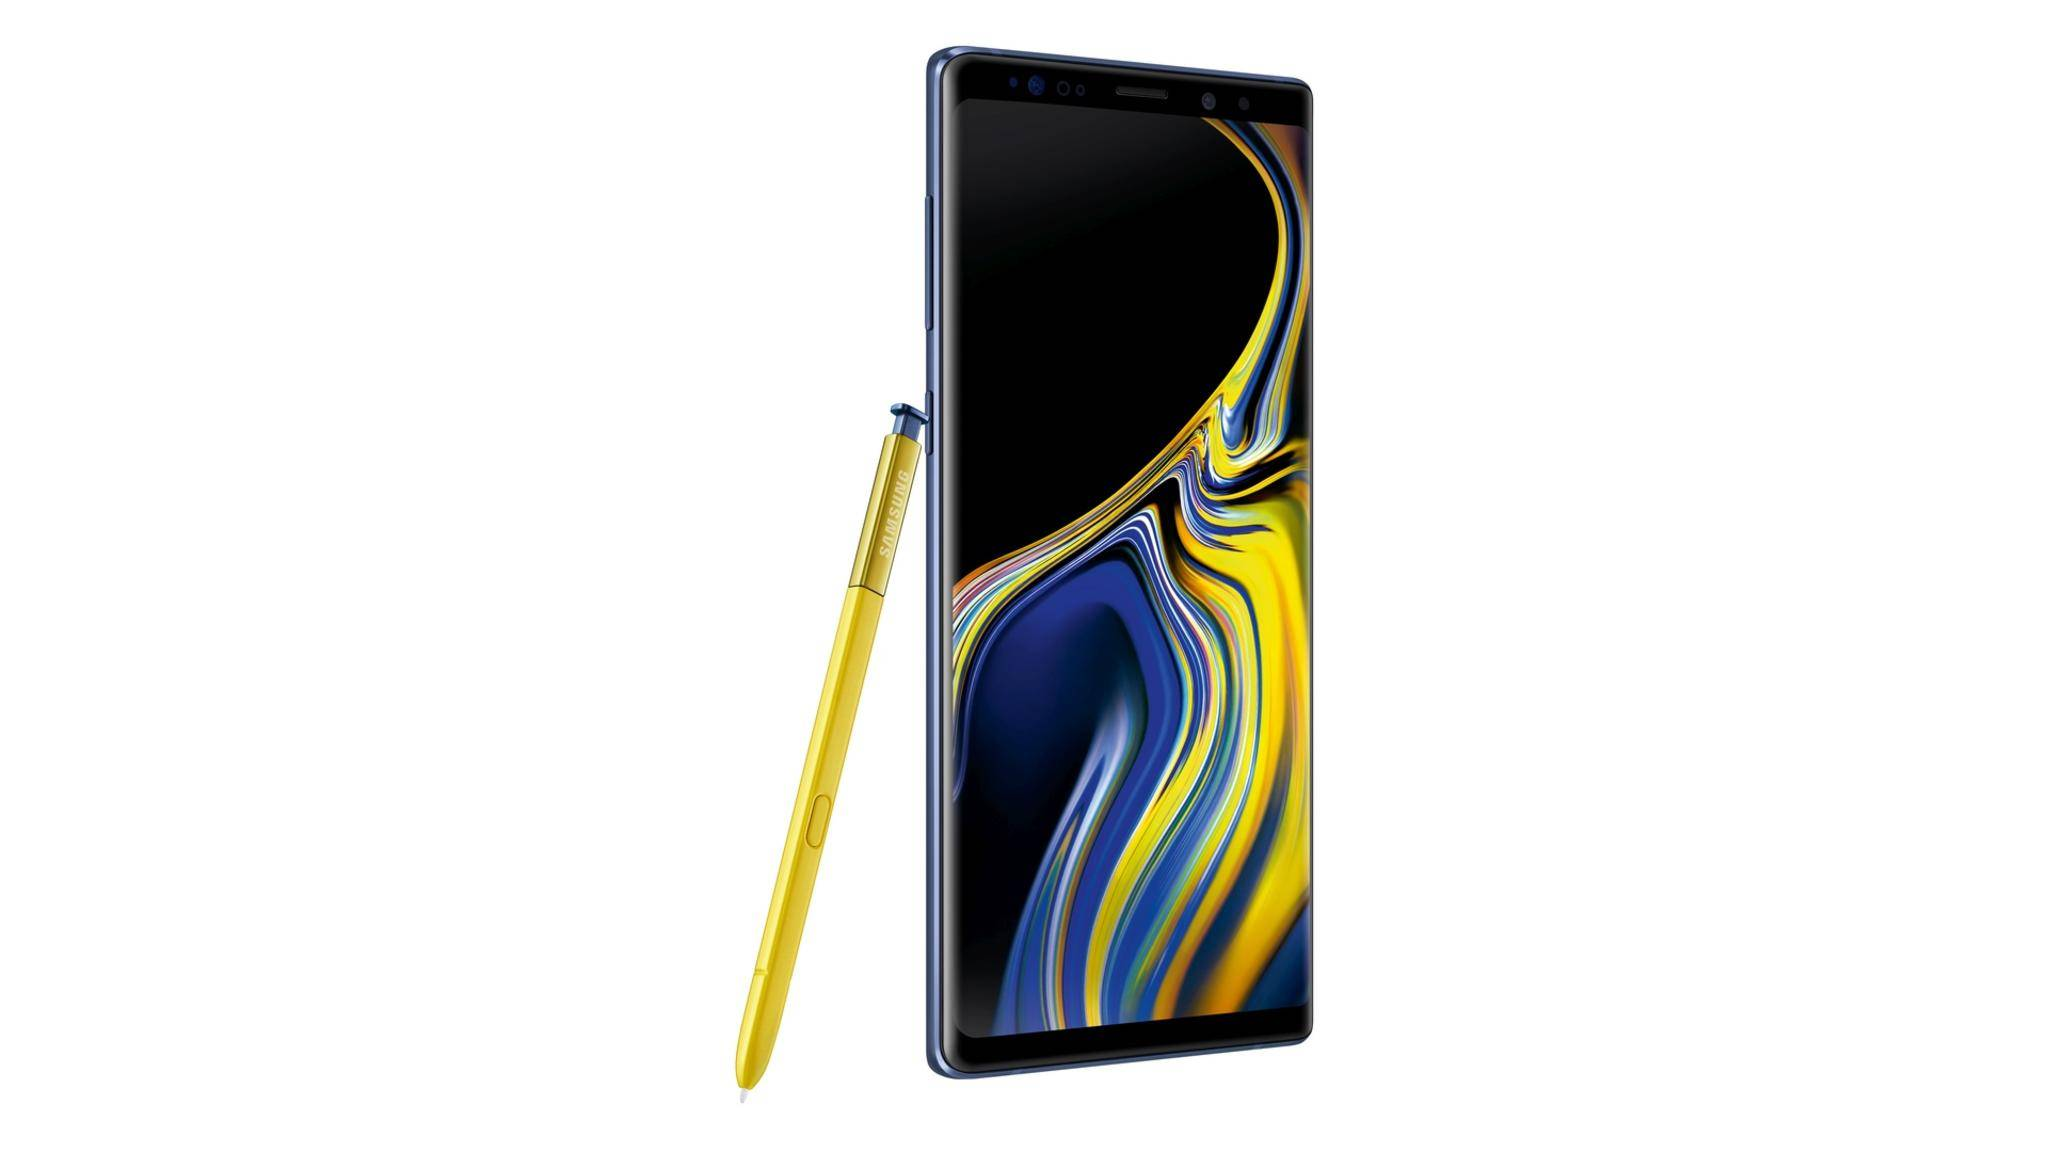 Das Galaxy Note 9 bietet einen innovativen S-Pen mit Bluetooth-Support.